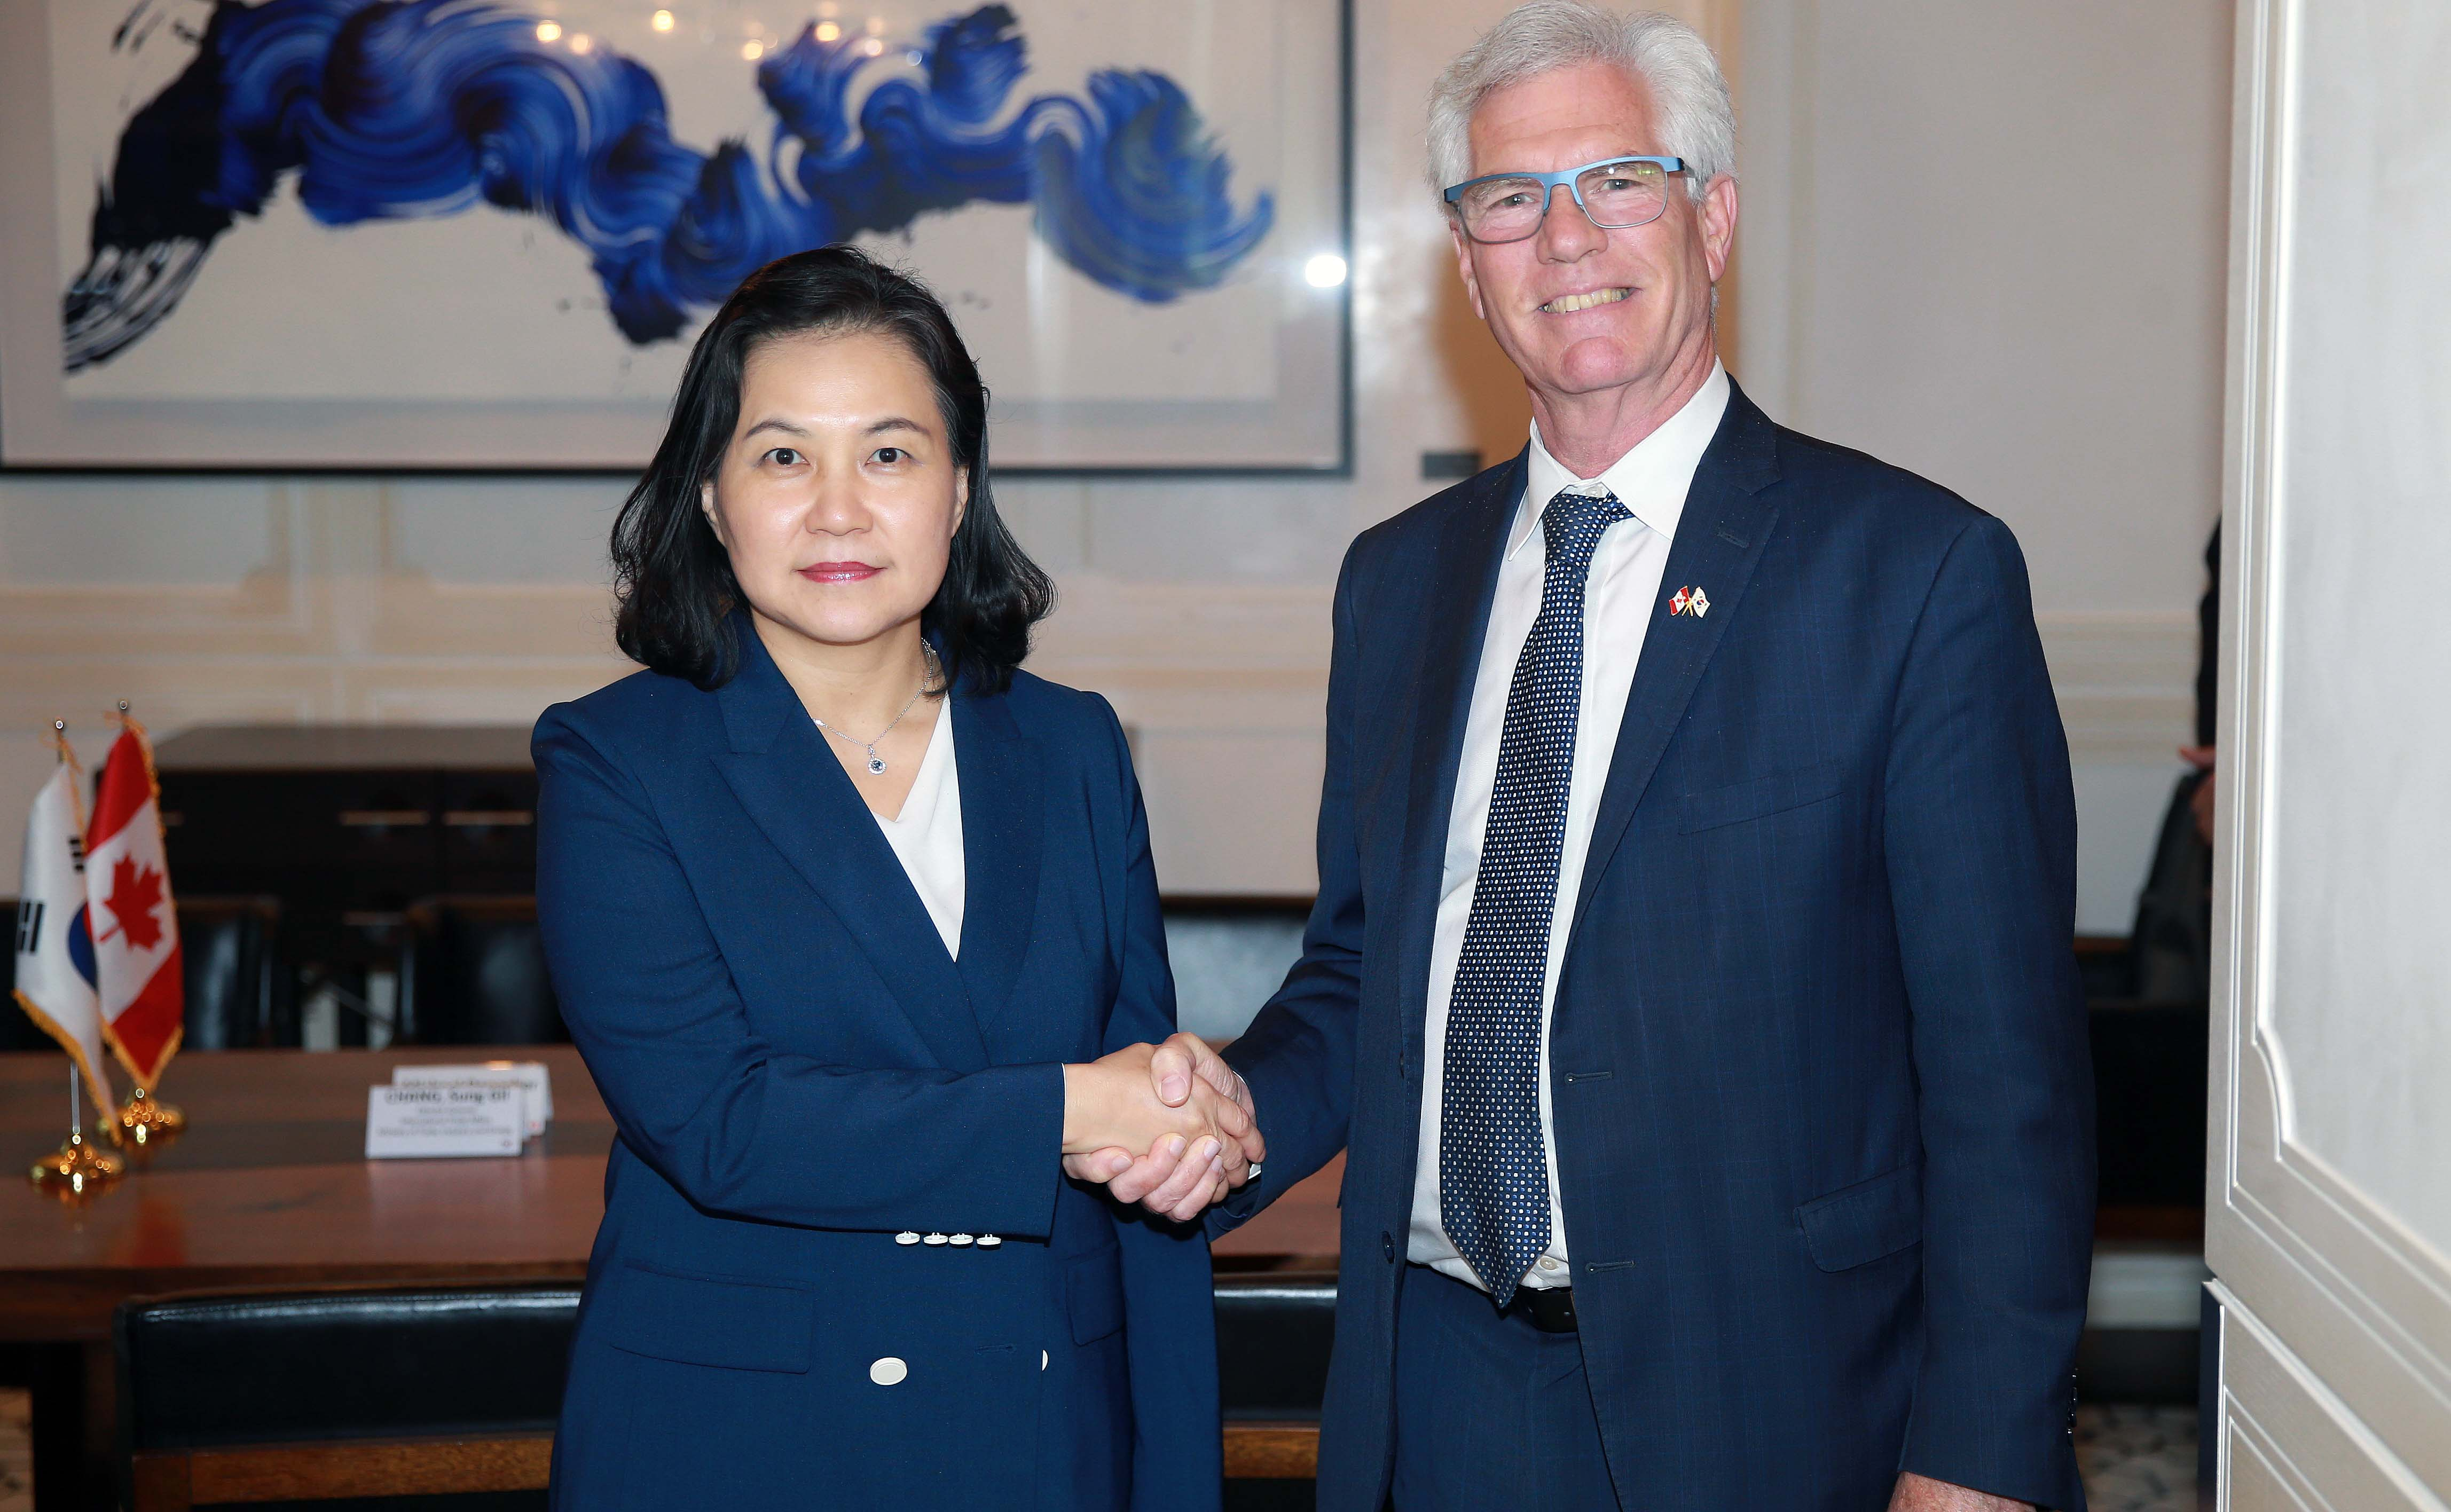 Trade Minister Yoo meets with Canada's Trade Diversification Minister Image 0